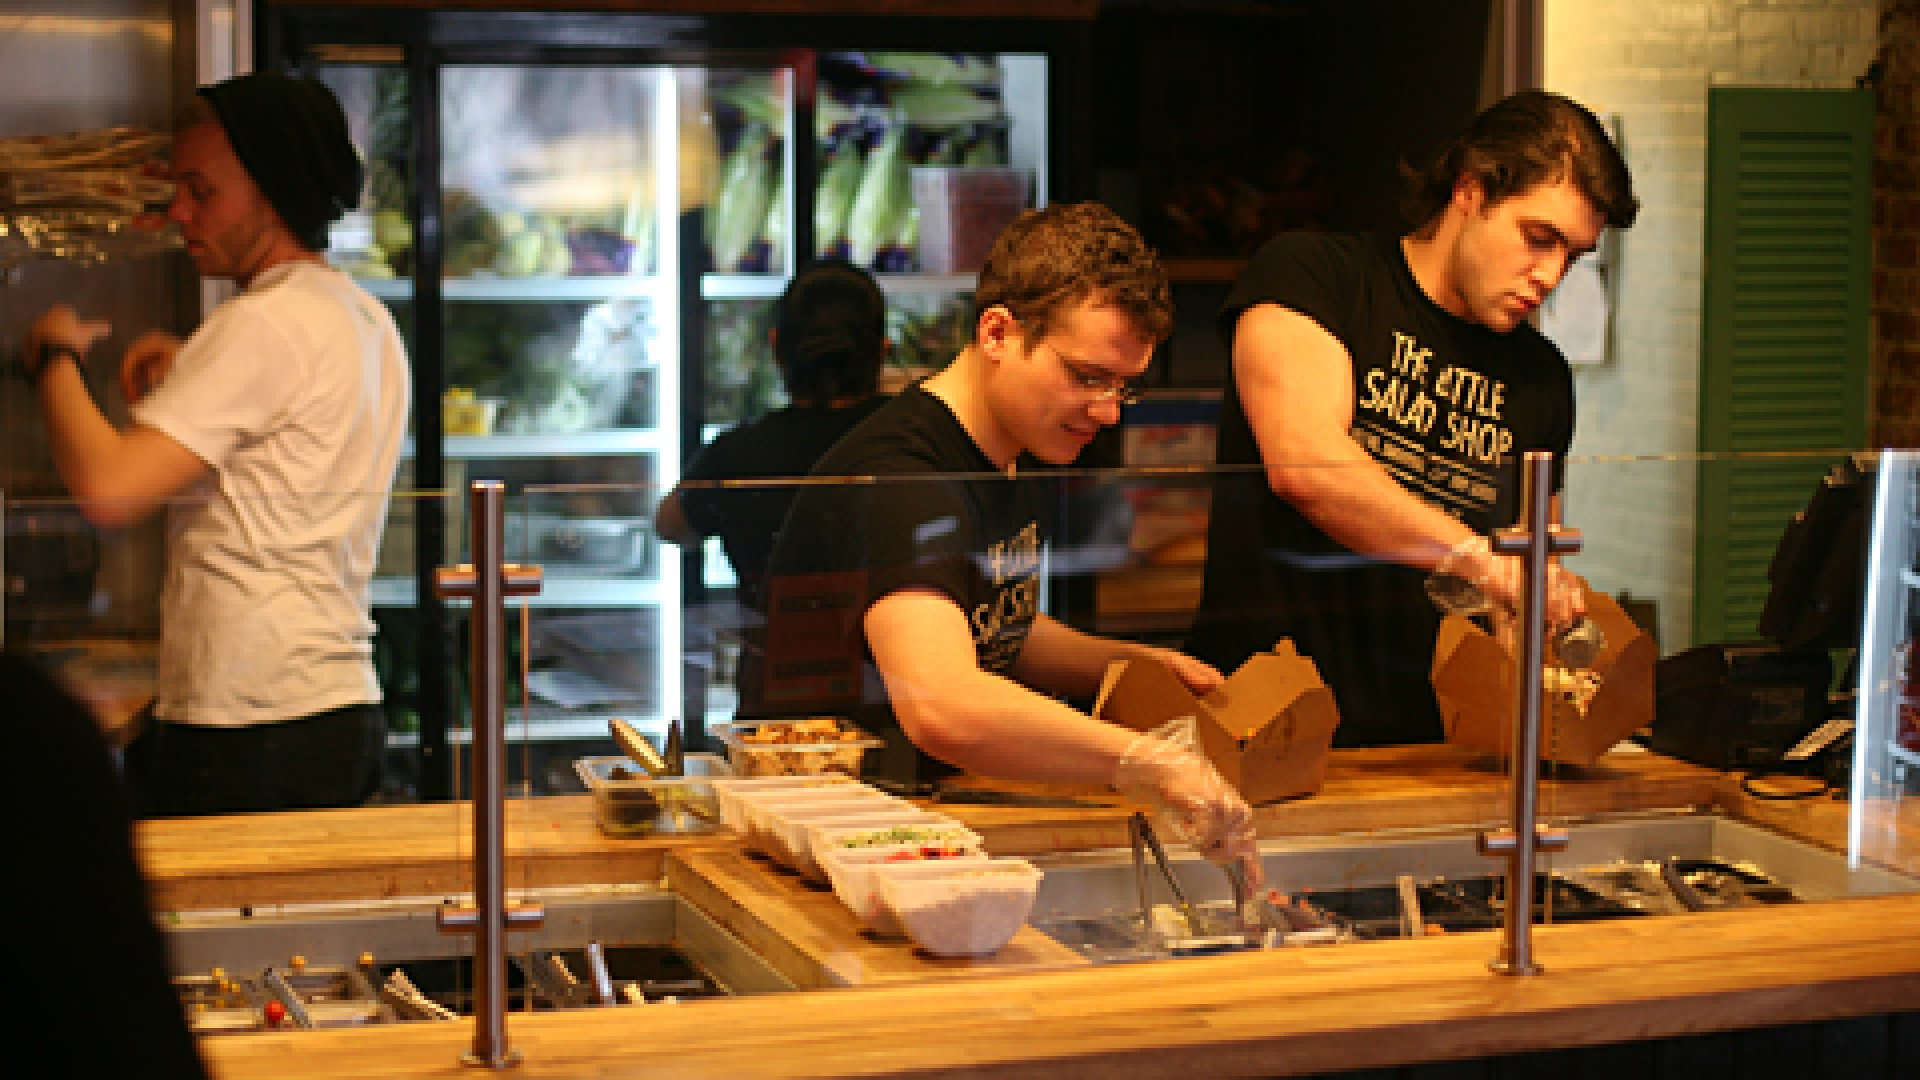 The Little Salad Shop has focuses on providing quick, affordable, health food, while serving the campus and community as well, says co-founders Jerry Choinski (pictured left) and Etkin Tekin (right).